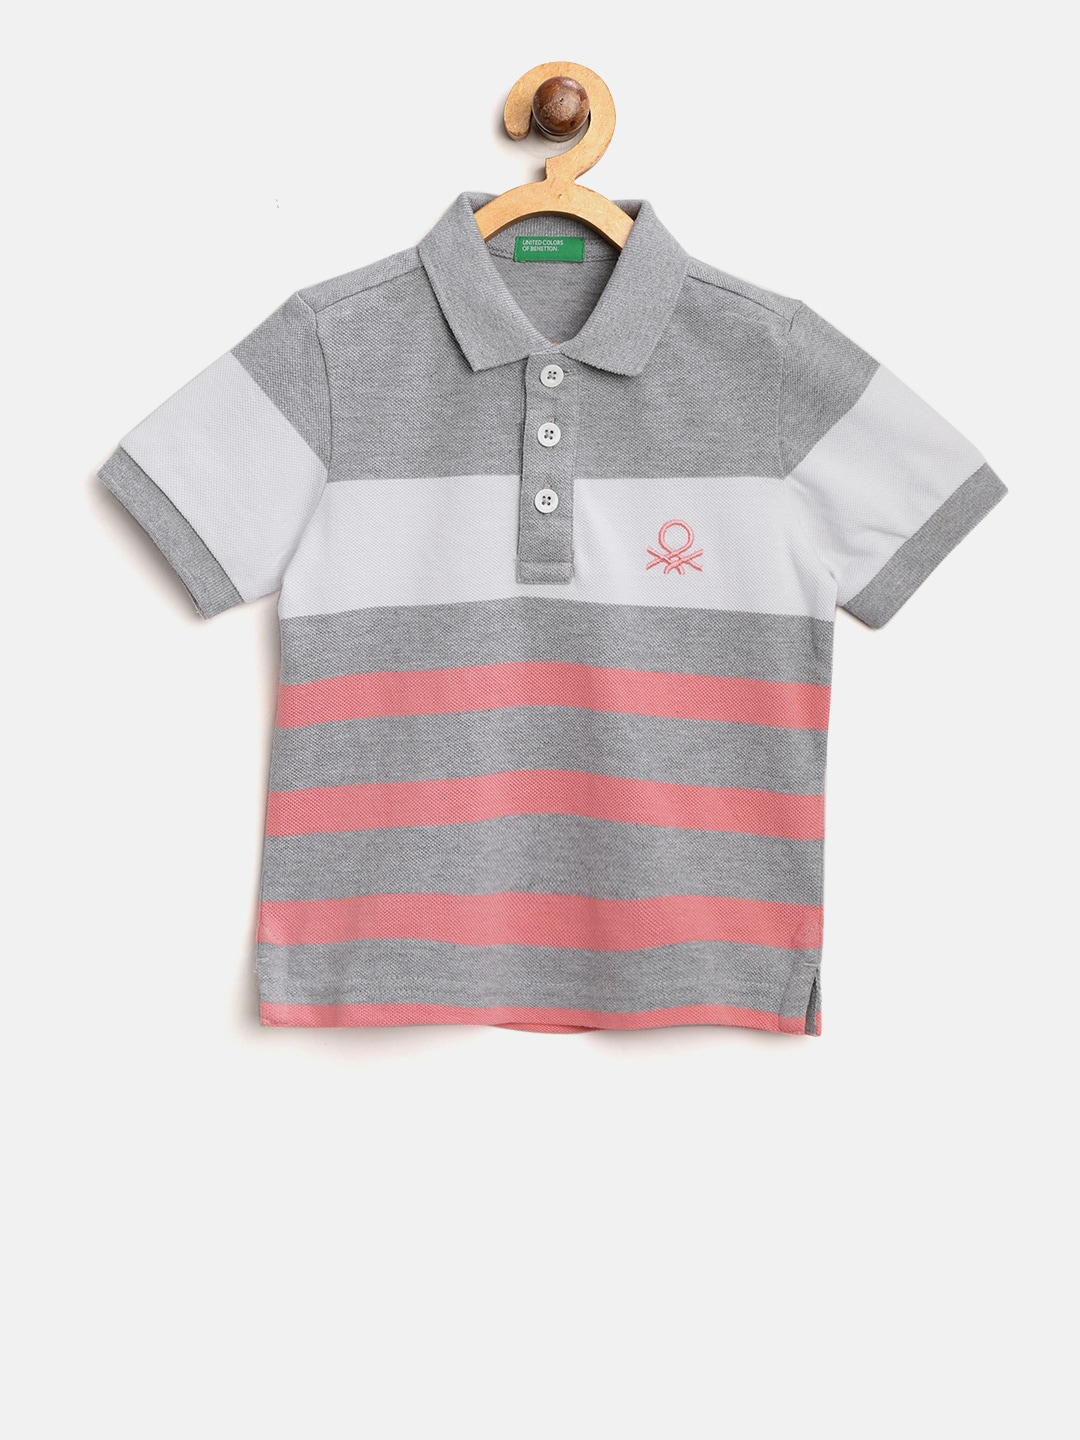 84d75f4e83edf Collar T-shirts - Buy Collared T-shirts Online | Myntra